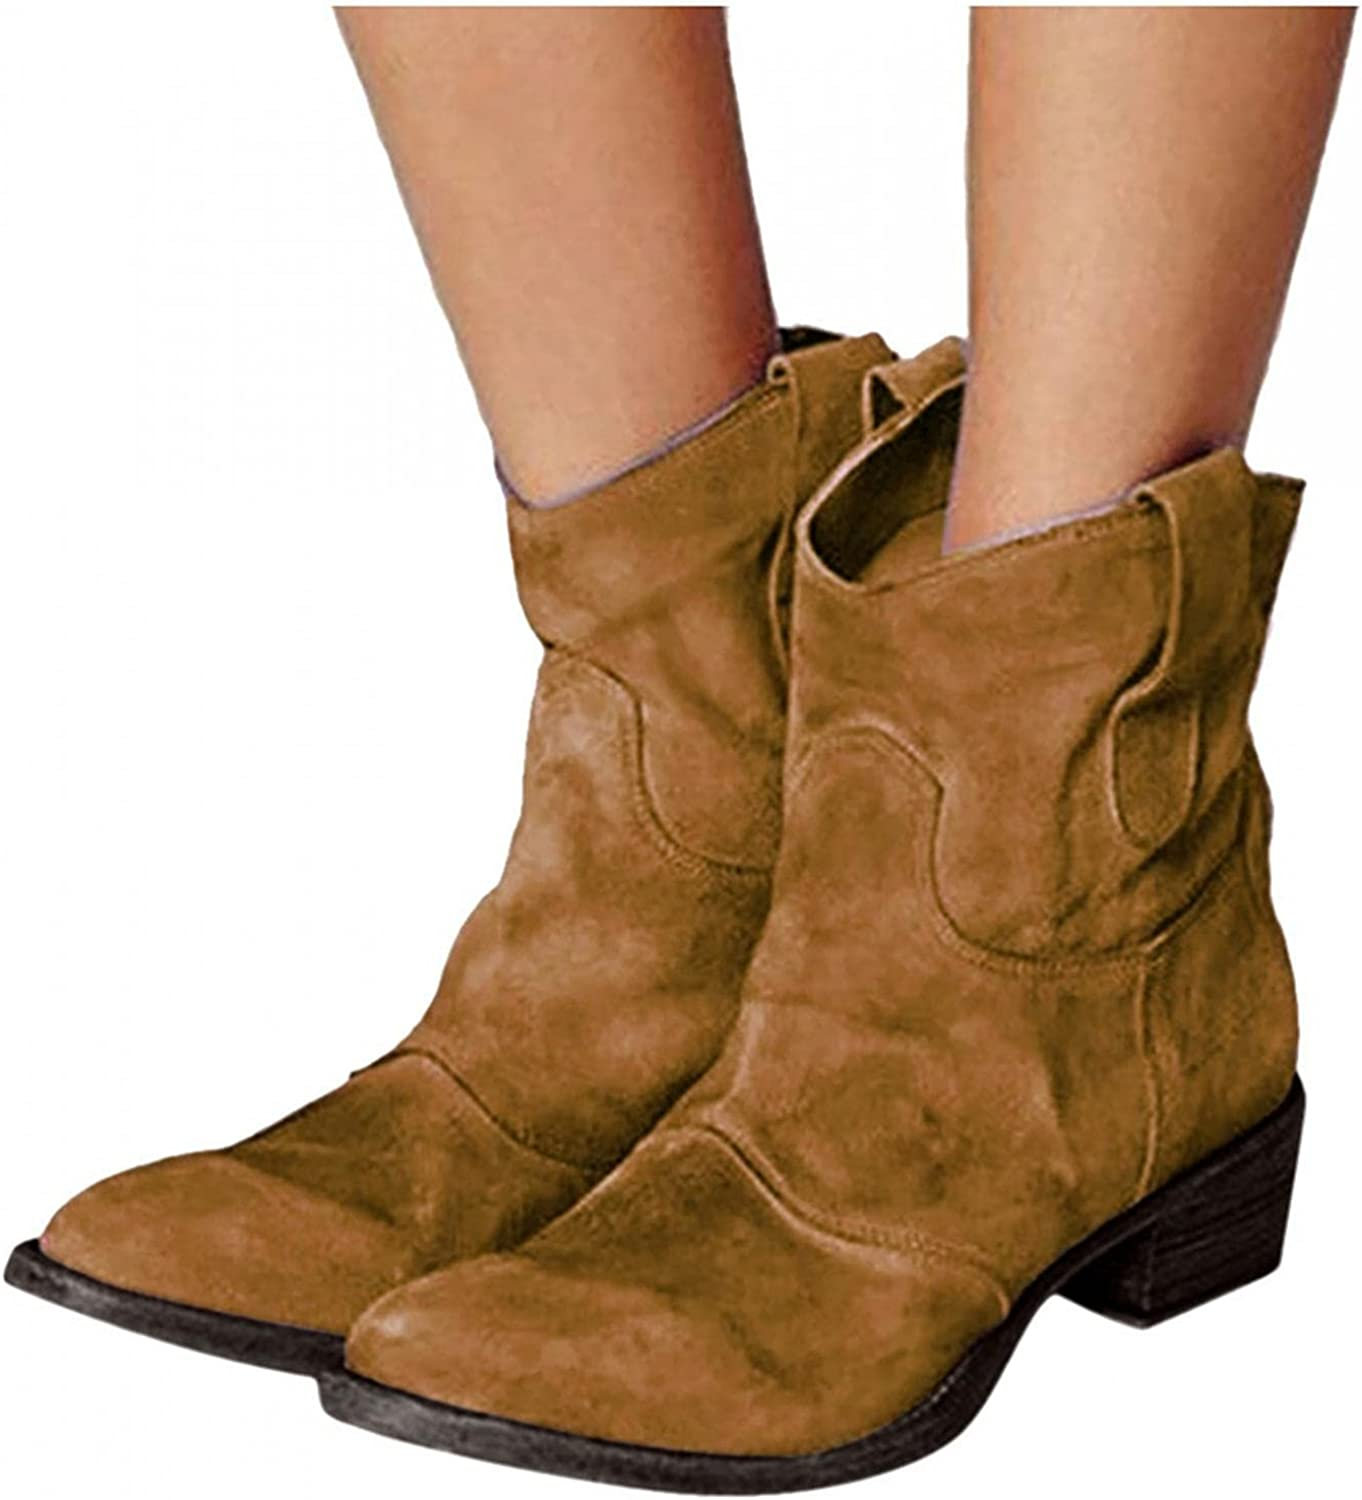 Zieglen Boots for Women Ankle Cowboy Max 52% OFF Slip-On Leather Finally resale start